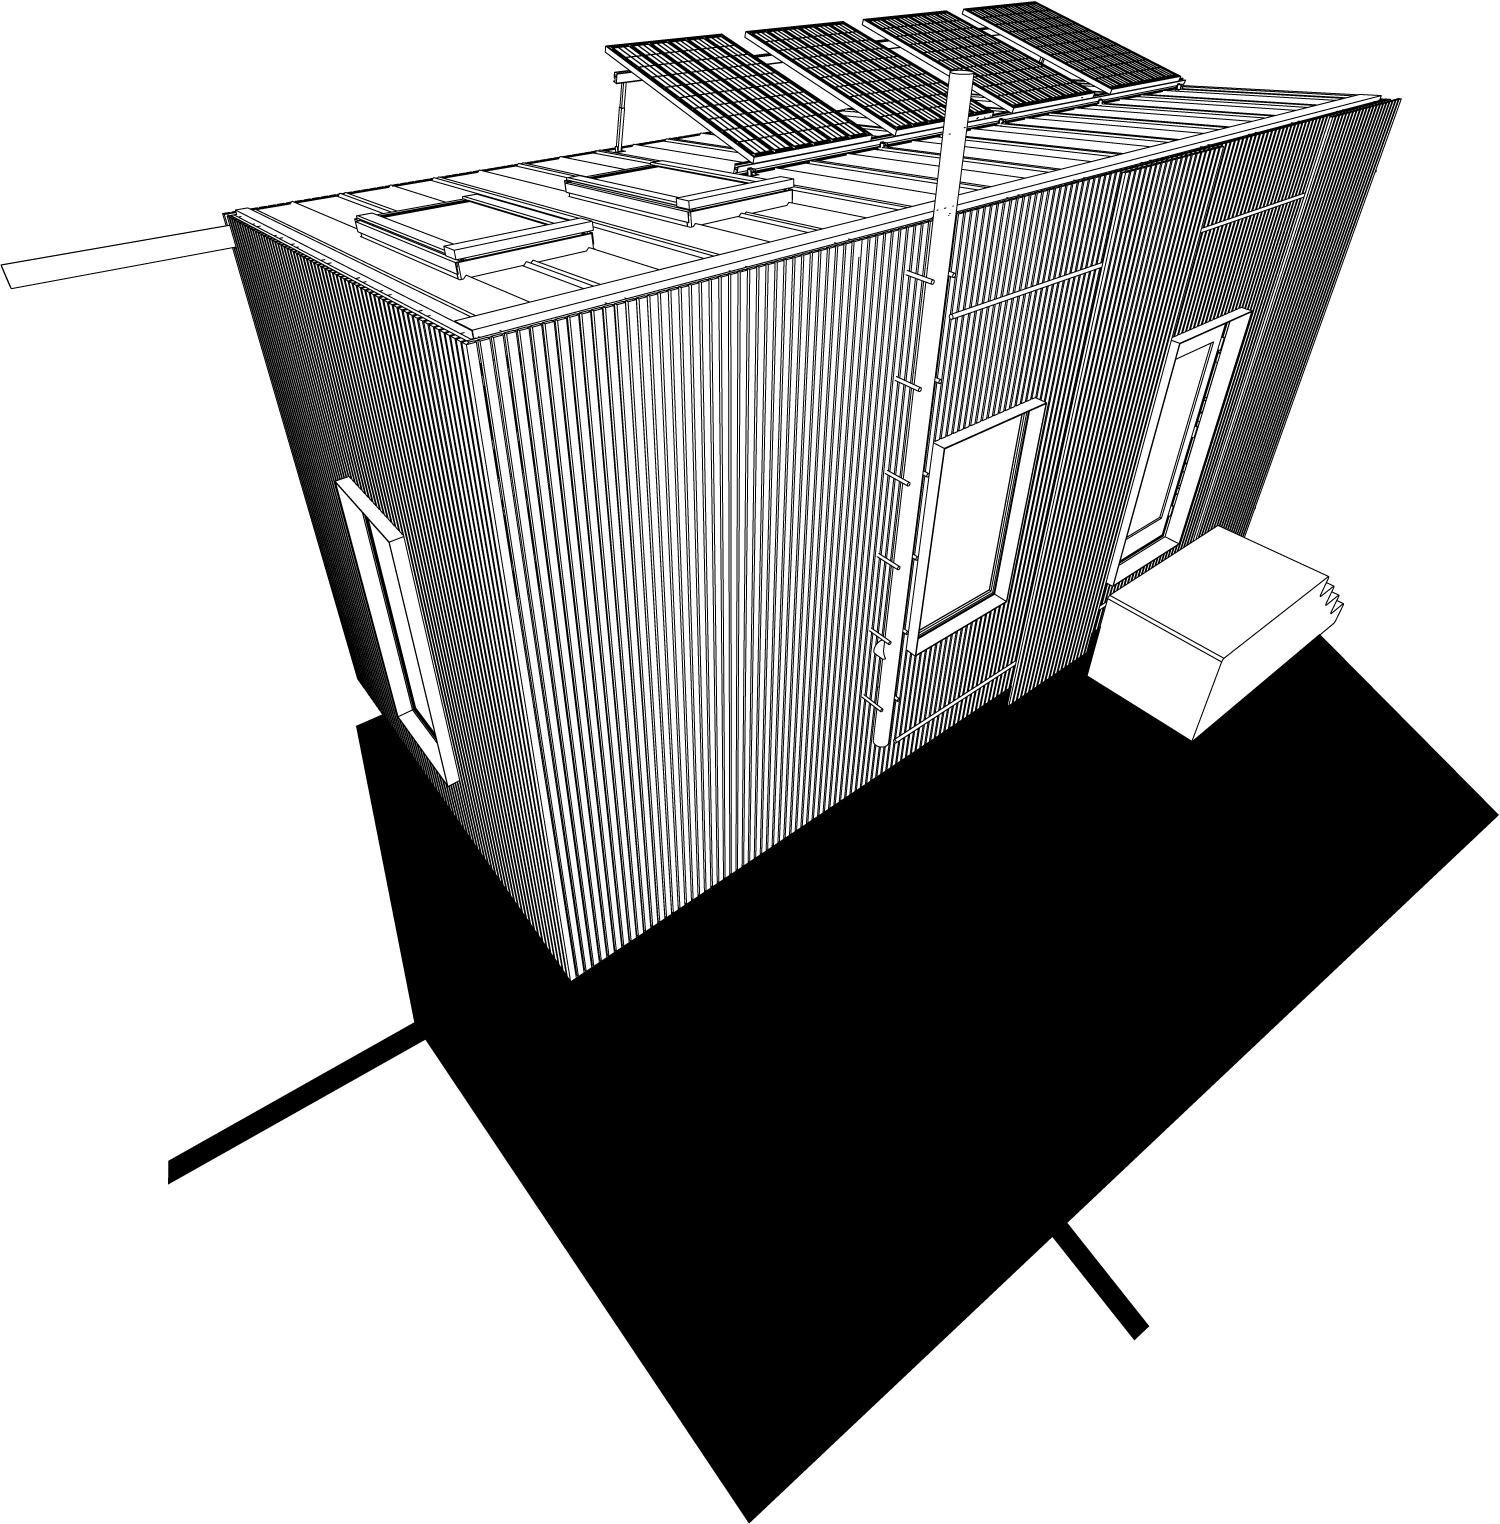 tlw_case-study_projection_drawings_2pt.png